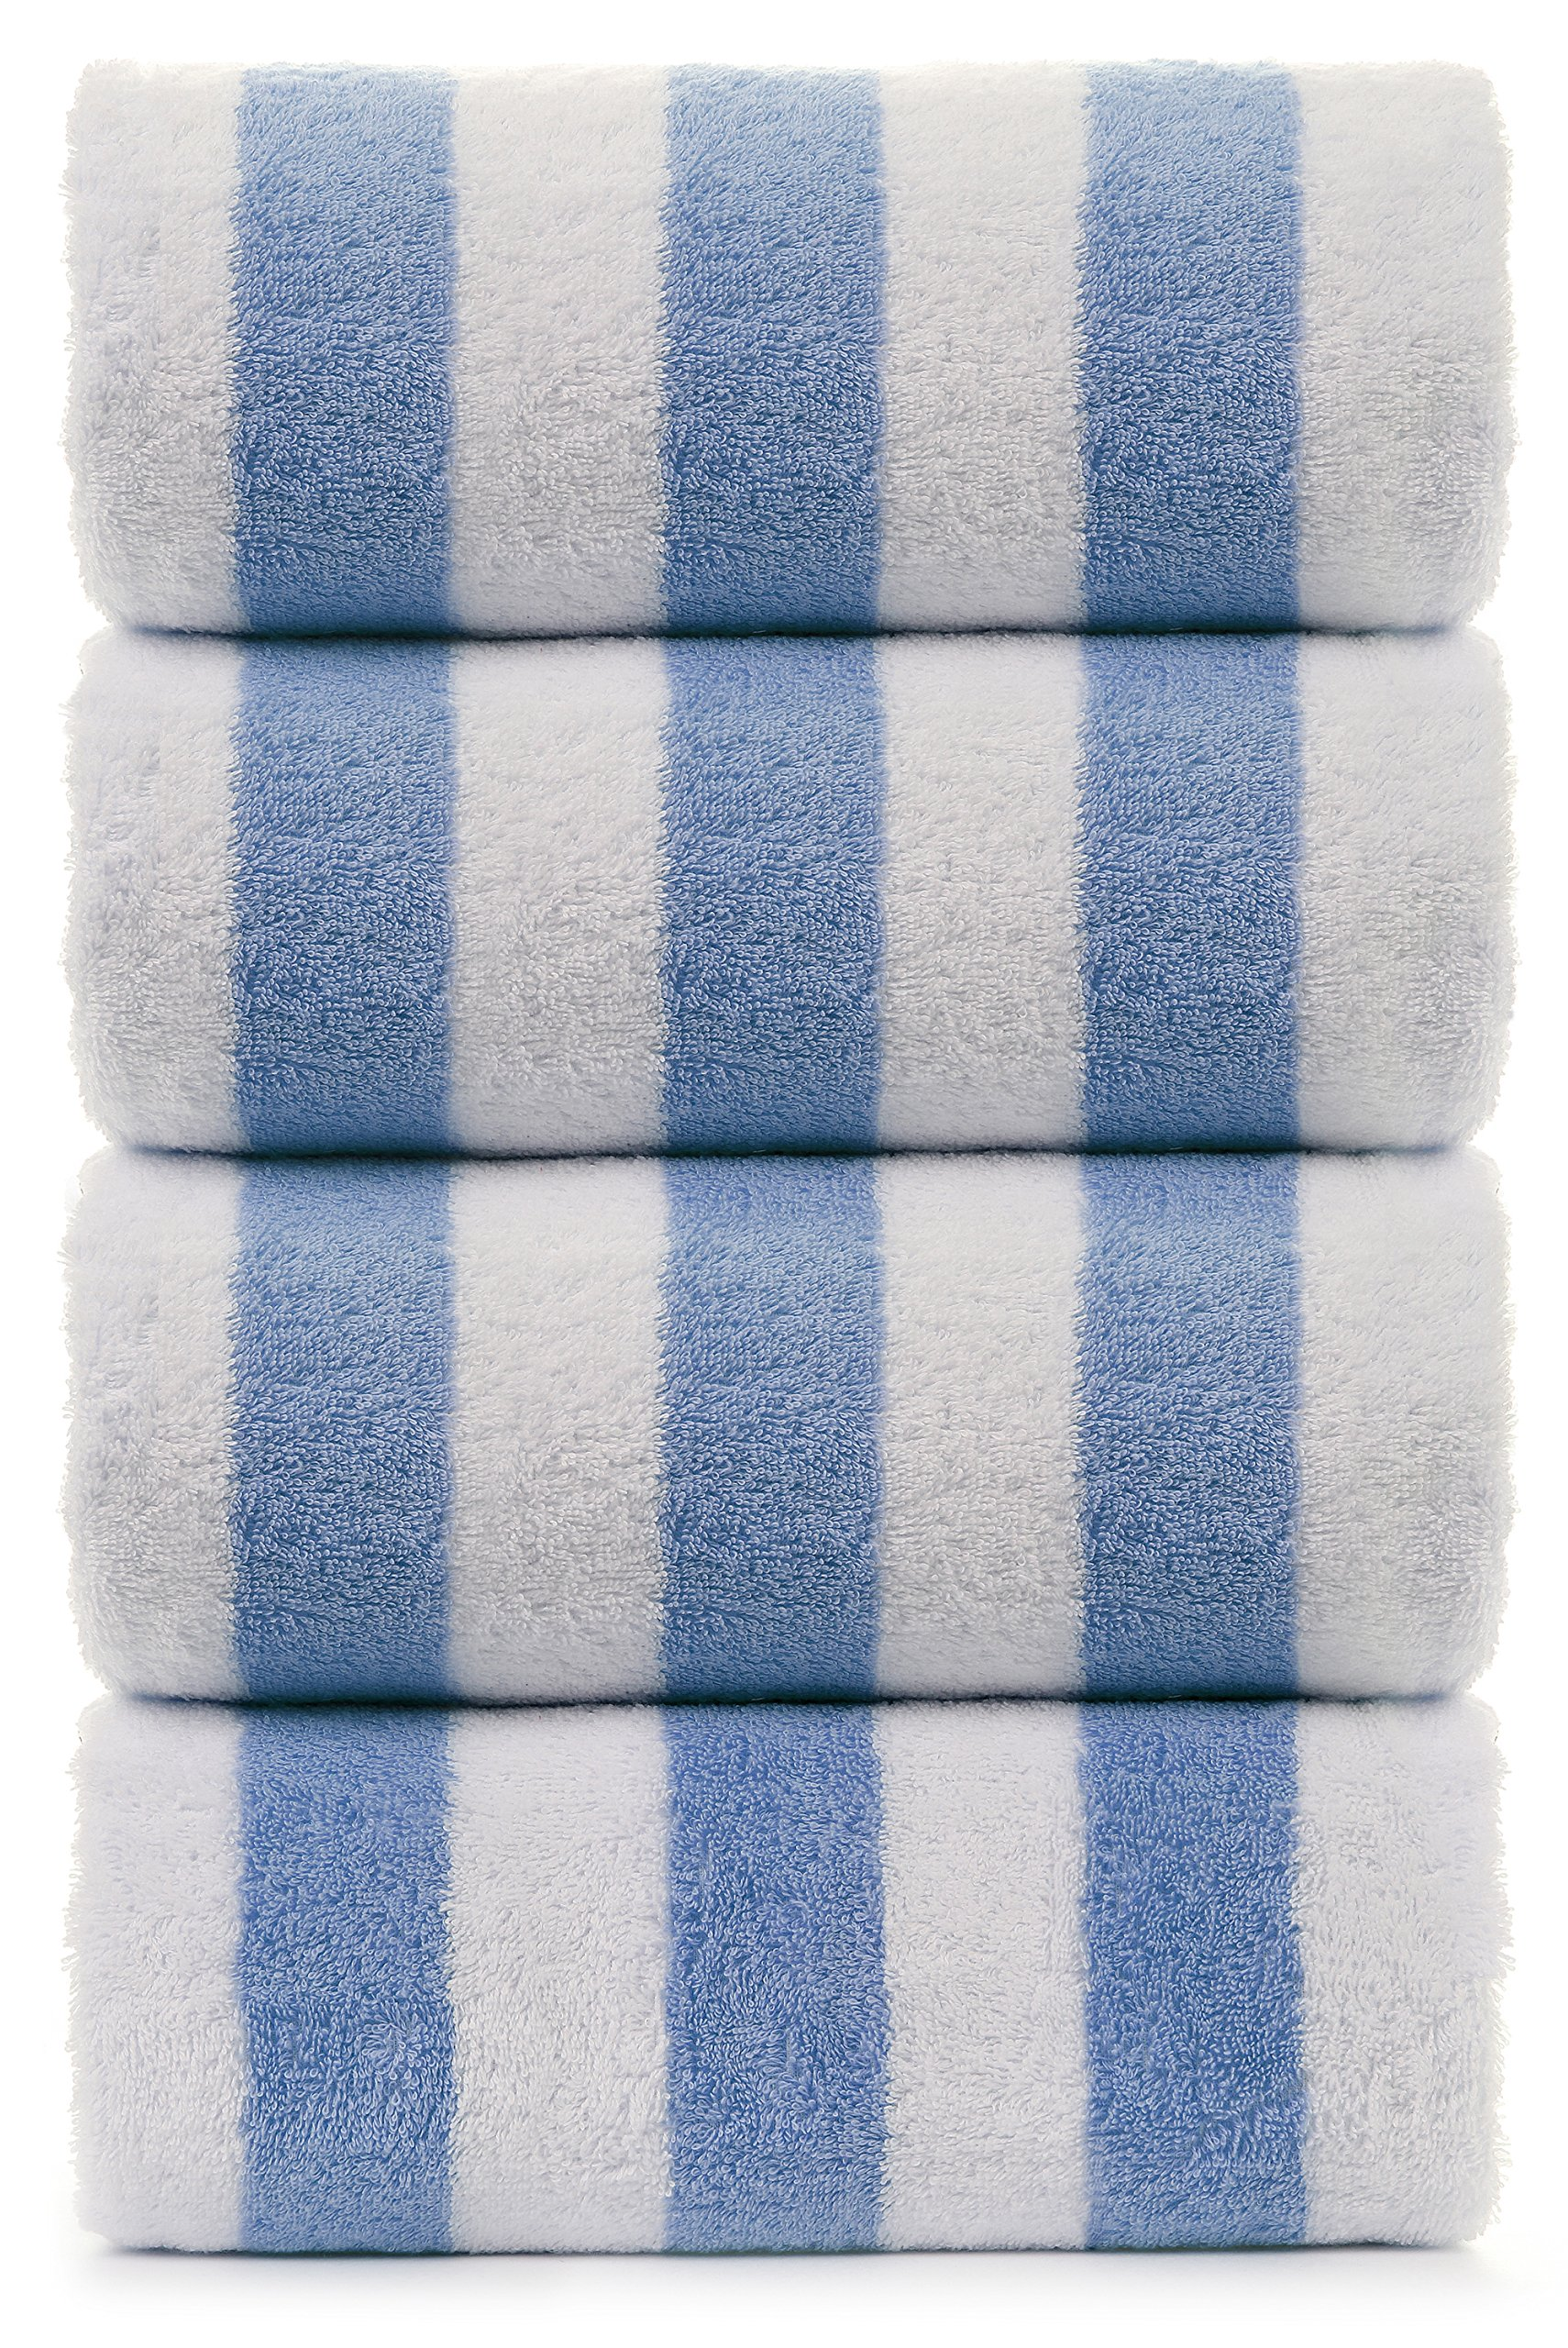 Turkuoise Turkish Towel - large stripe